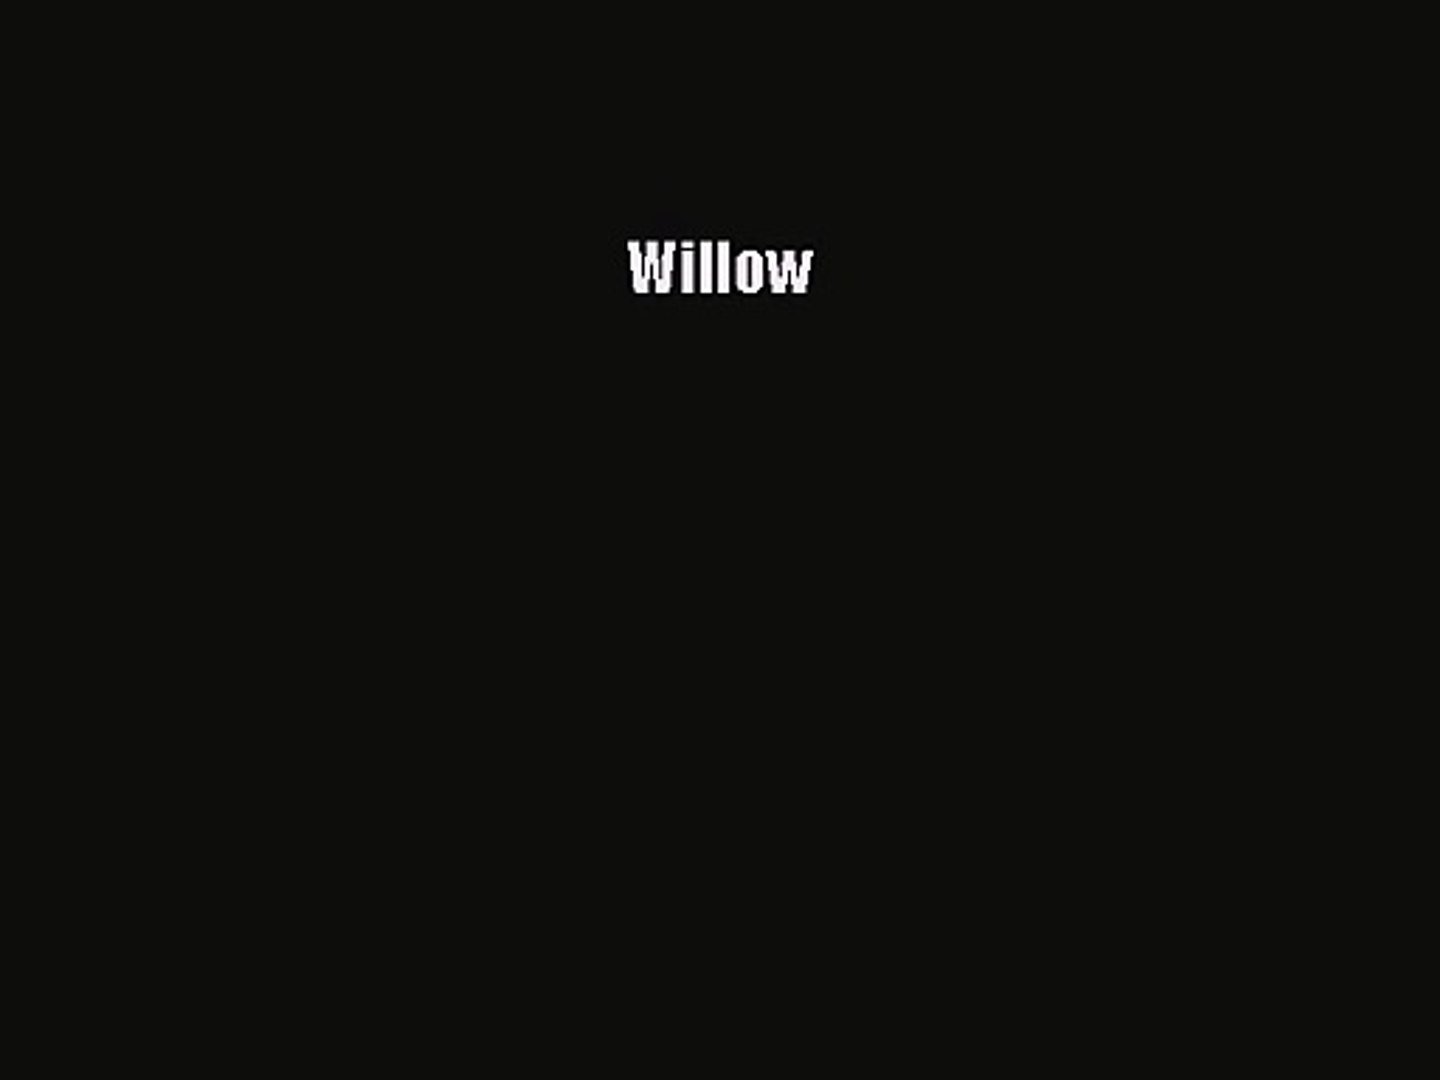 Willow [PDF Download] Willow# [Download] Online